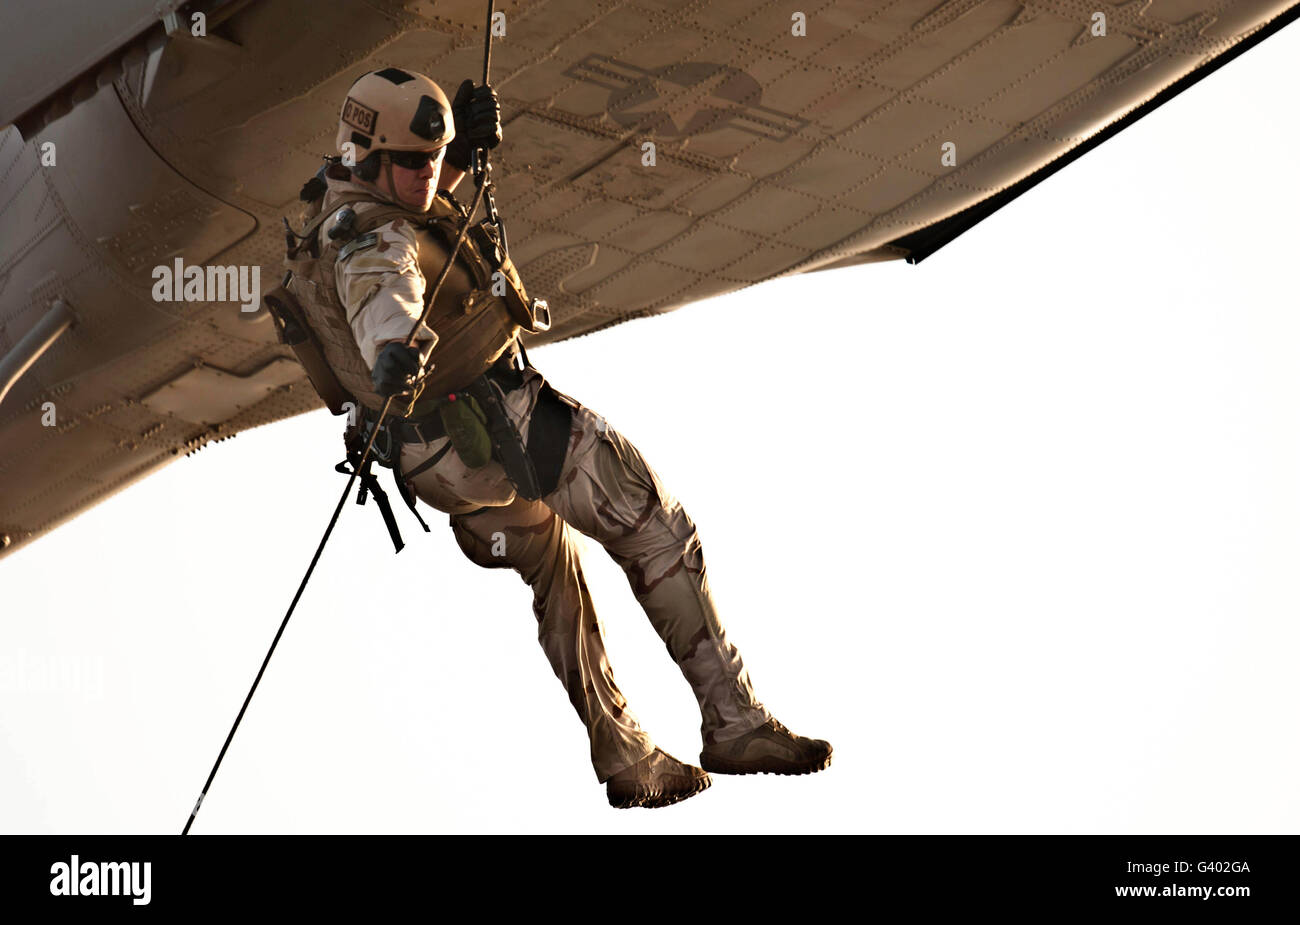 A soldier rappels from an MH-60S Knighthawk helicopter. Stock Photo